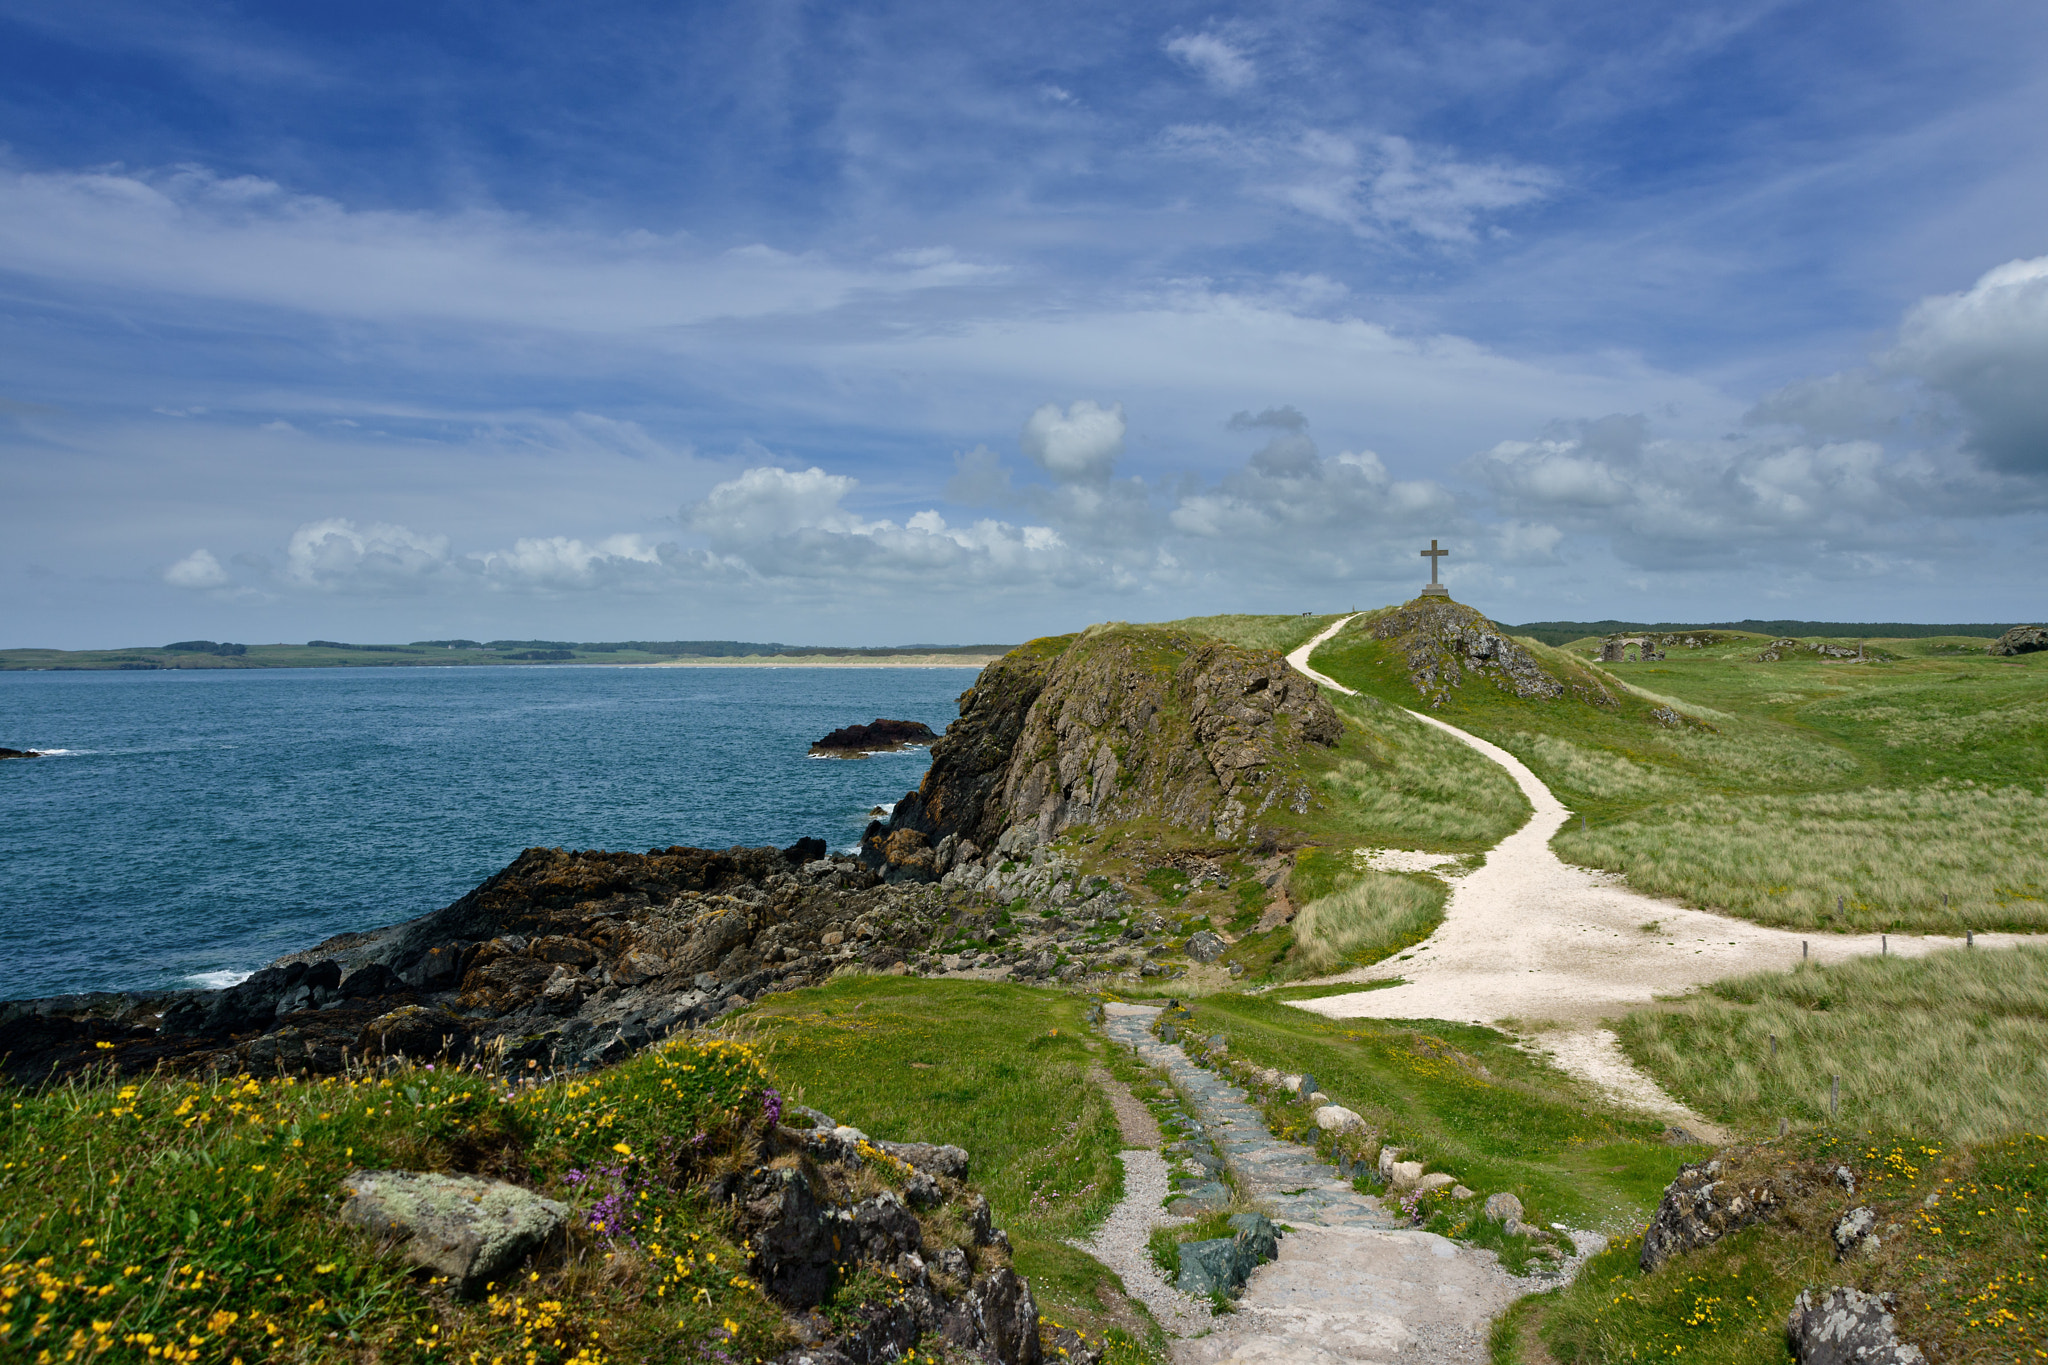 Photograph Looking back to Anglesey by Taz Wake on 500px